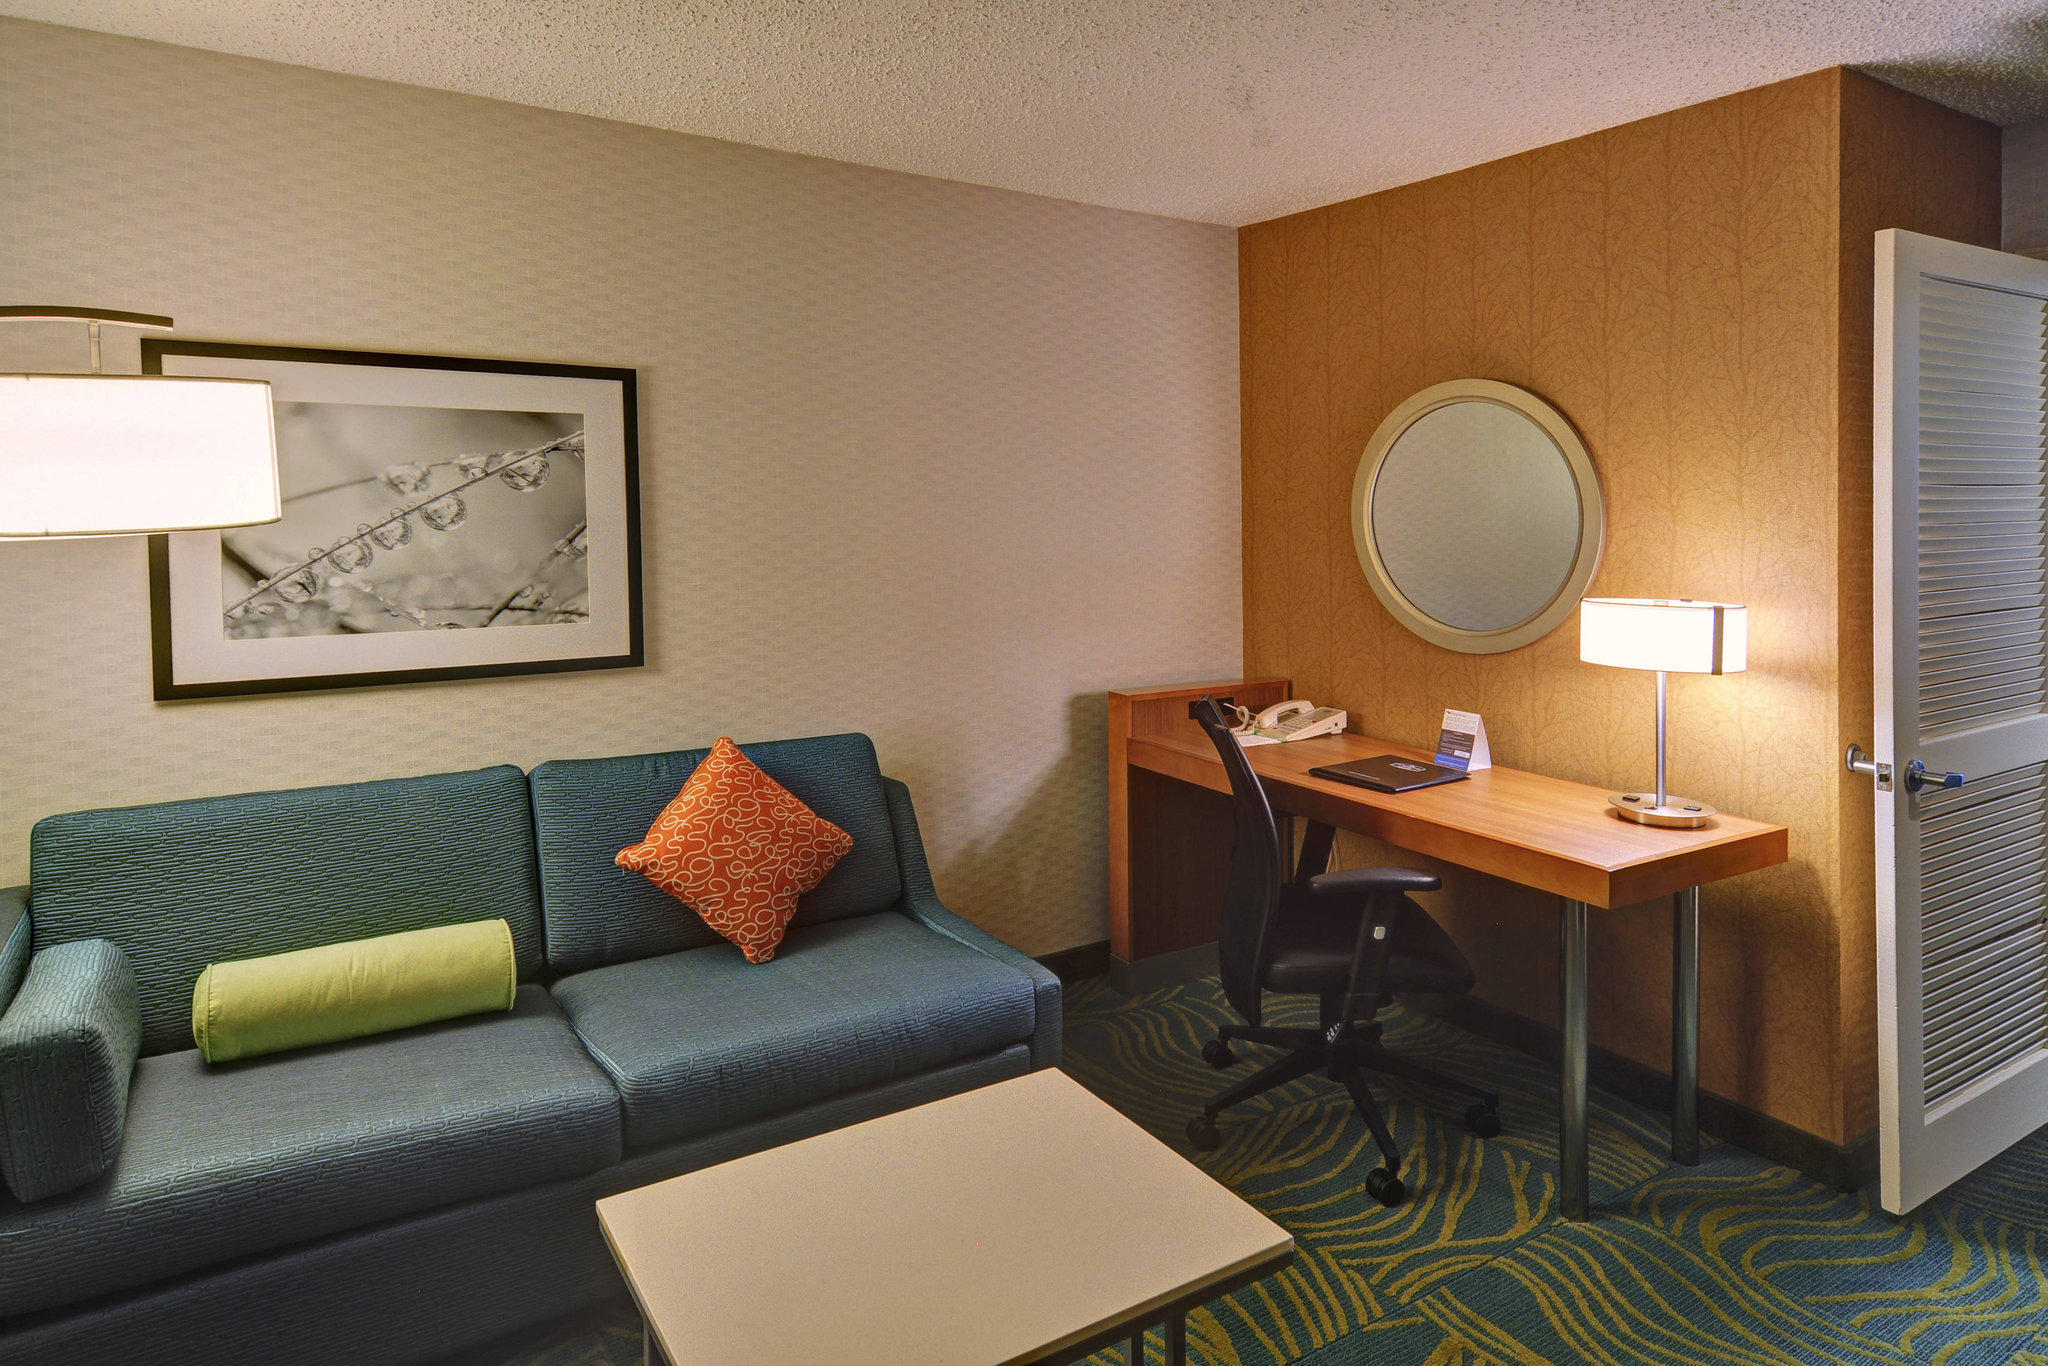 SpringHill Suites by Marriott Dallas NW Highway at Stemmons/I-35E